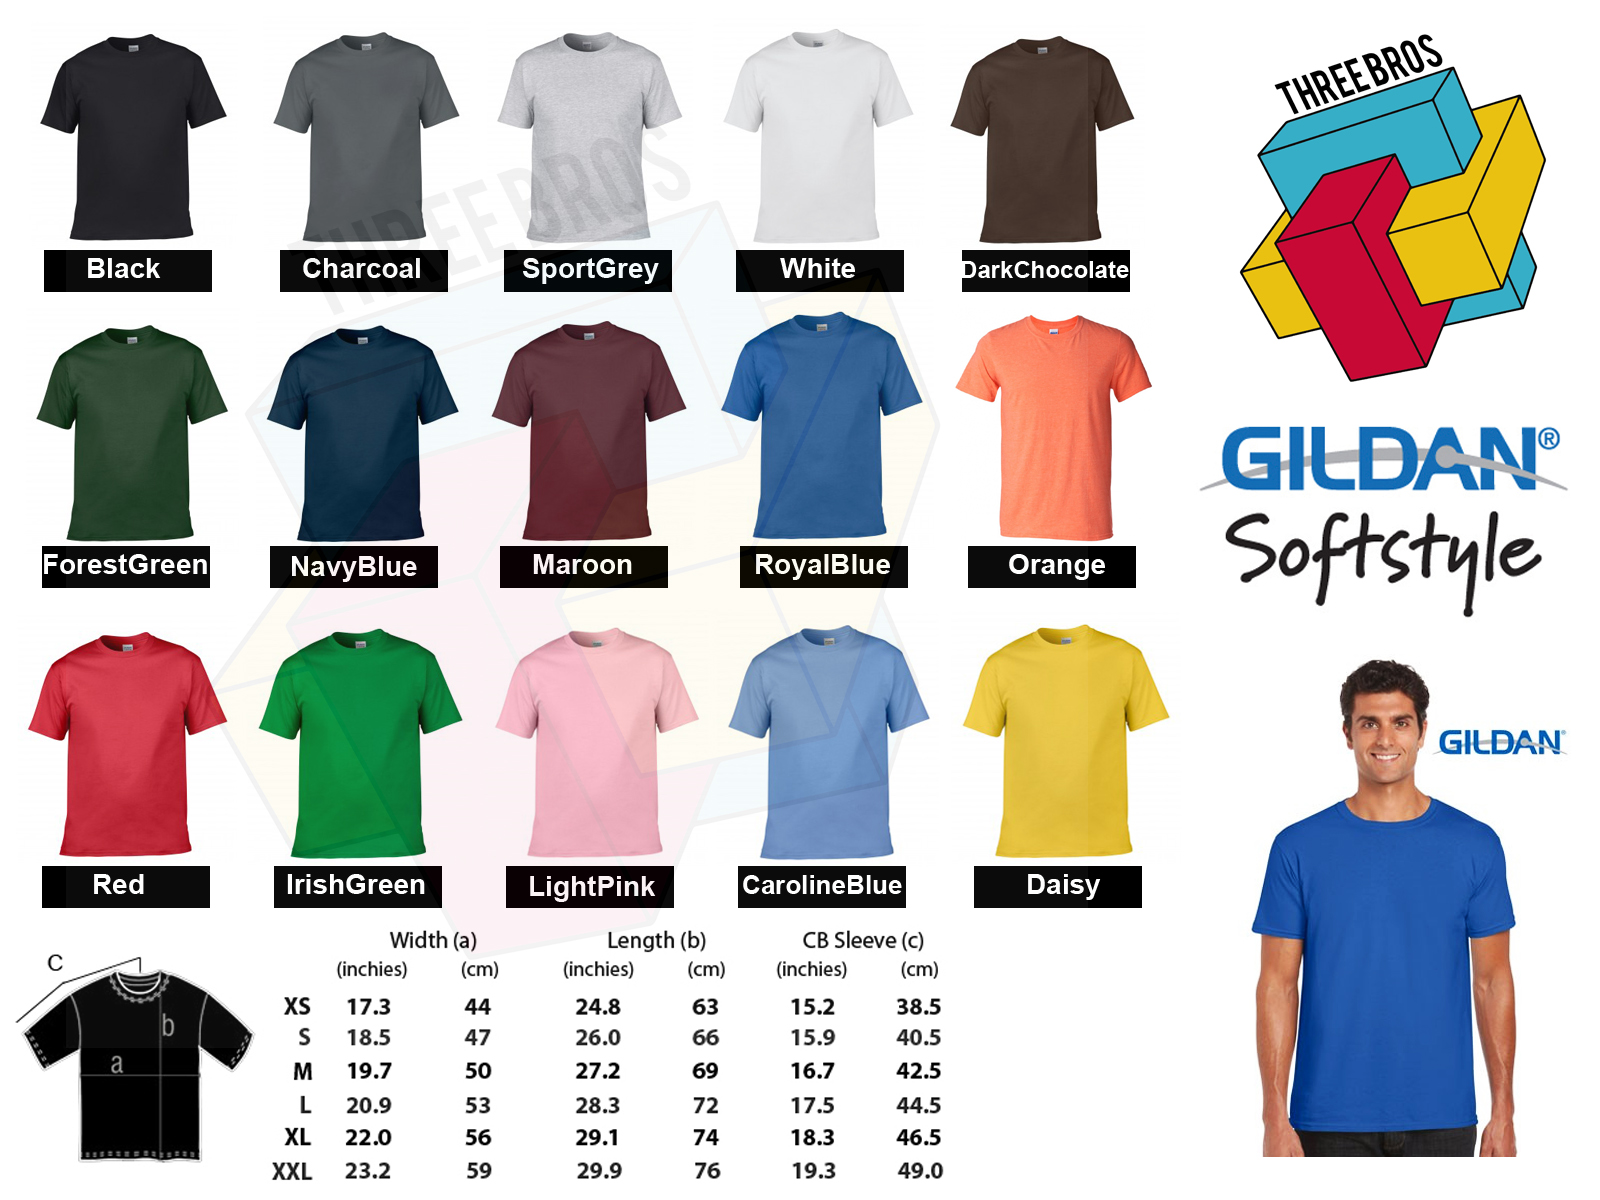 Gildan soft style color chart images free any chart examples gildan soft style color chart choice image free any chart examples gildan soft style color chart nvjuhfo Image collections